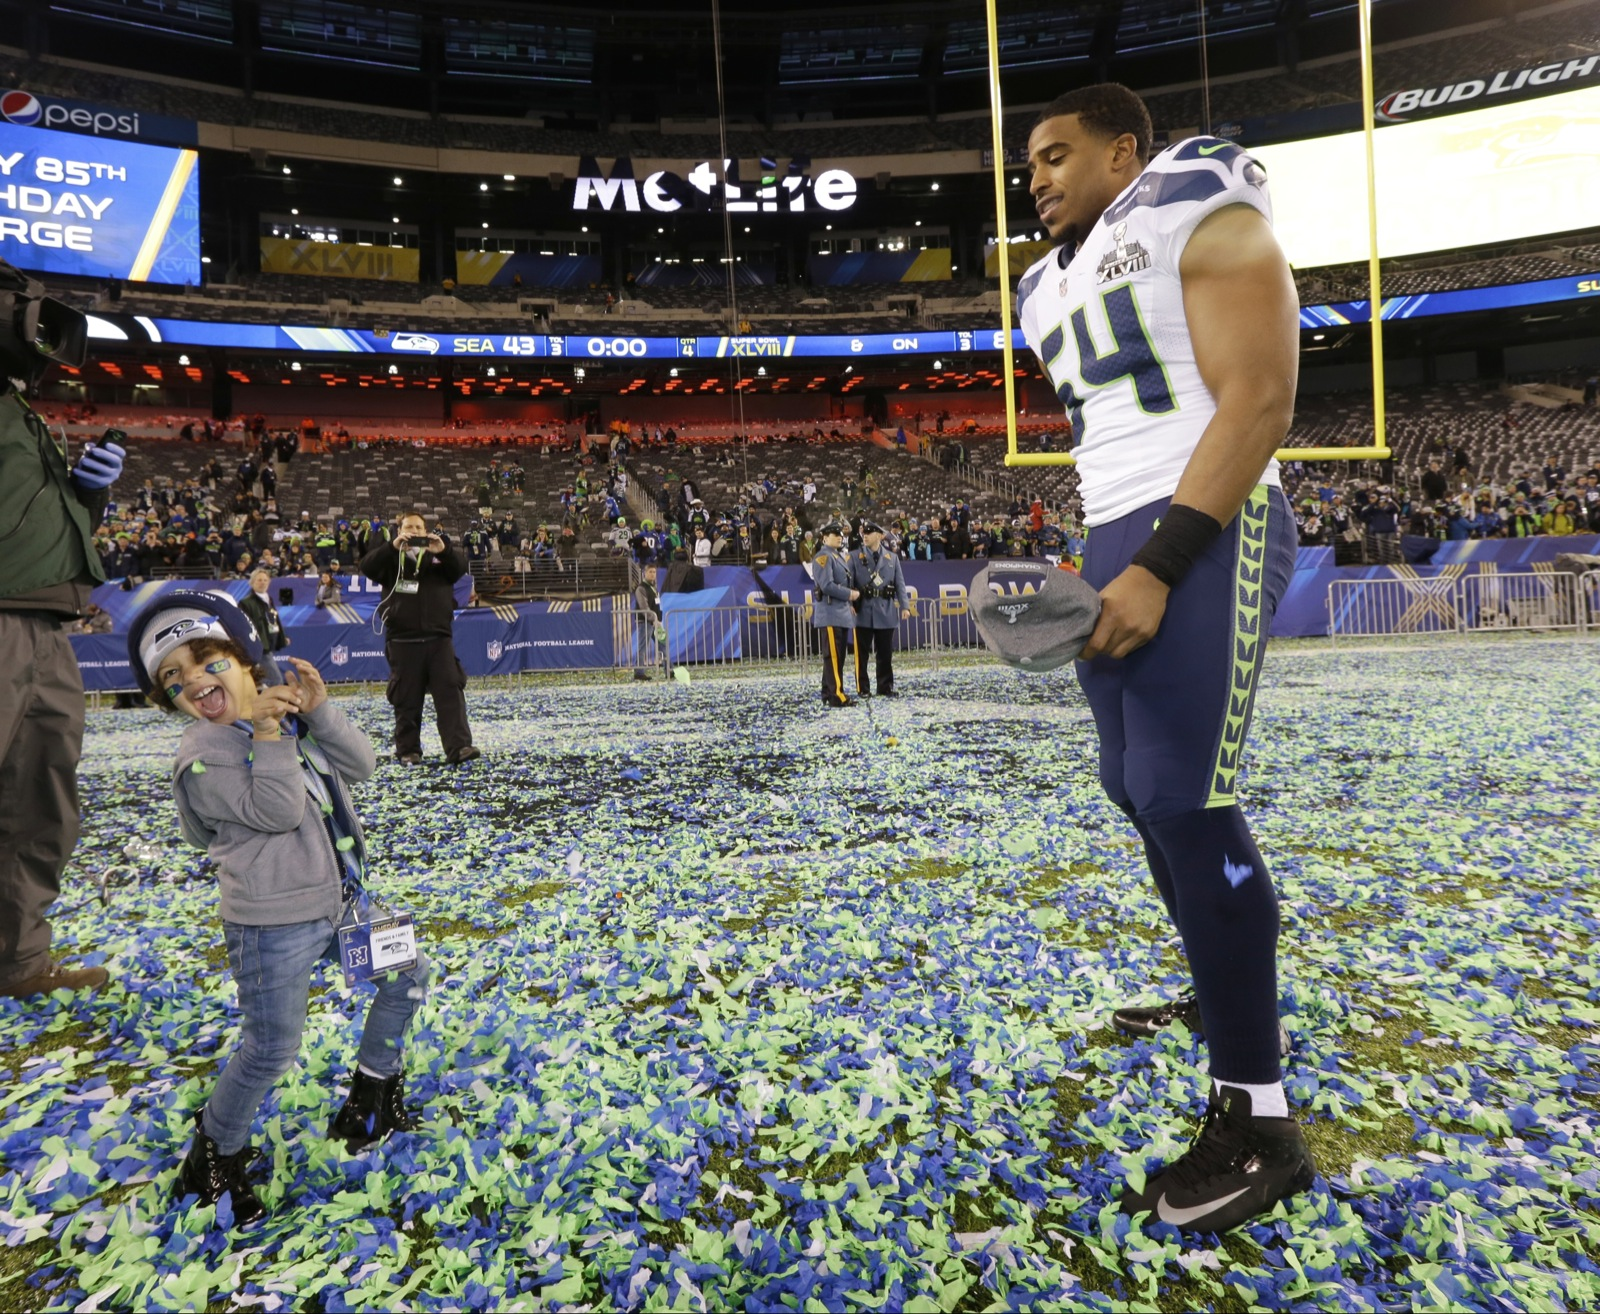 Super Bowl Post Game Seattle Seahawks Bobby Wagner celebrates